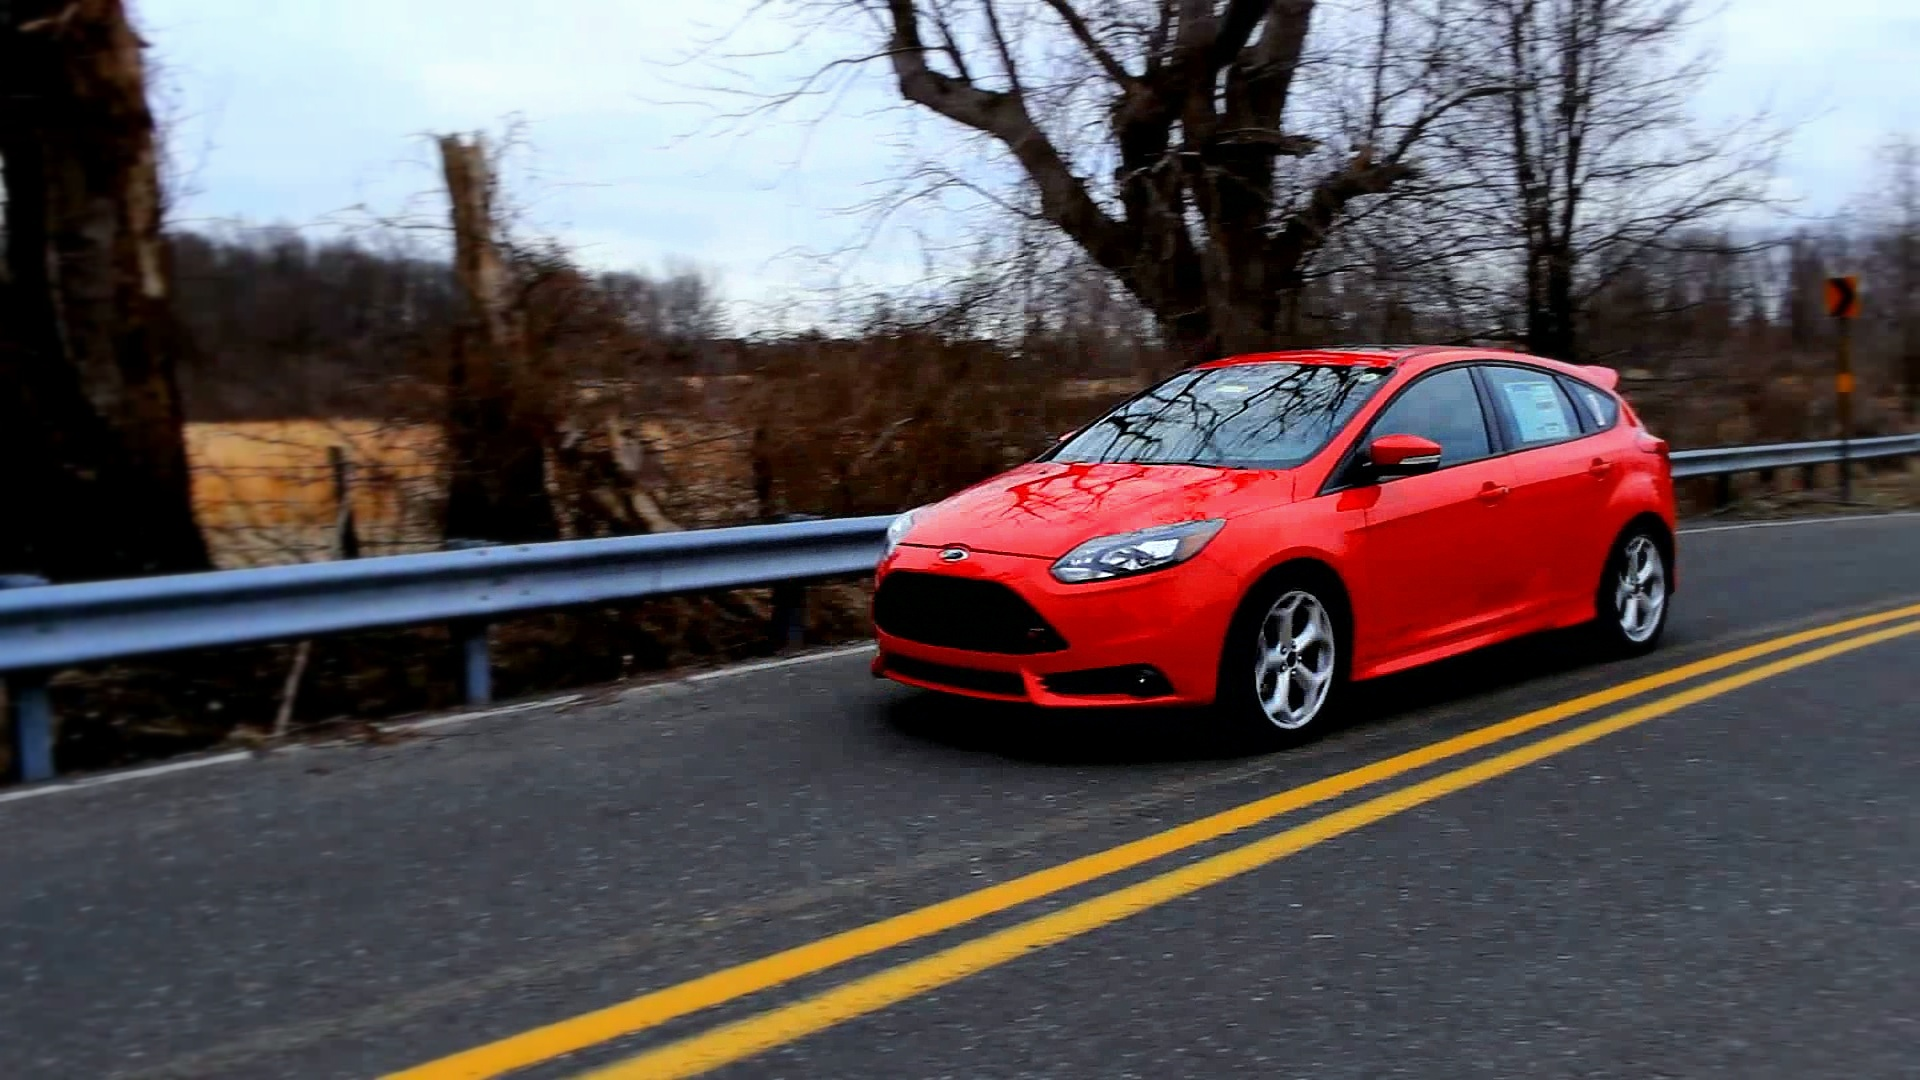 focus st nj ford dealer test drive